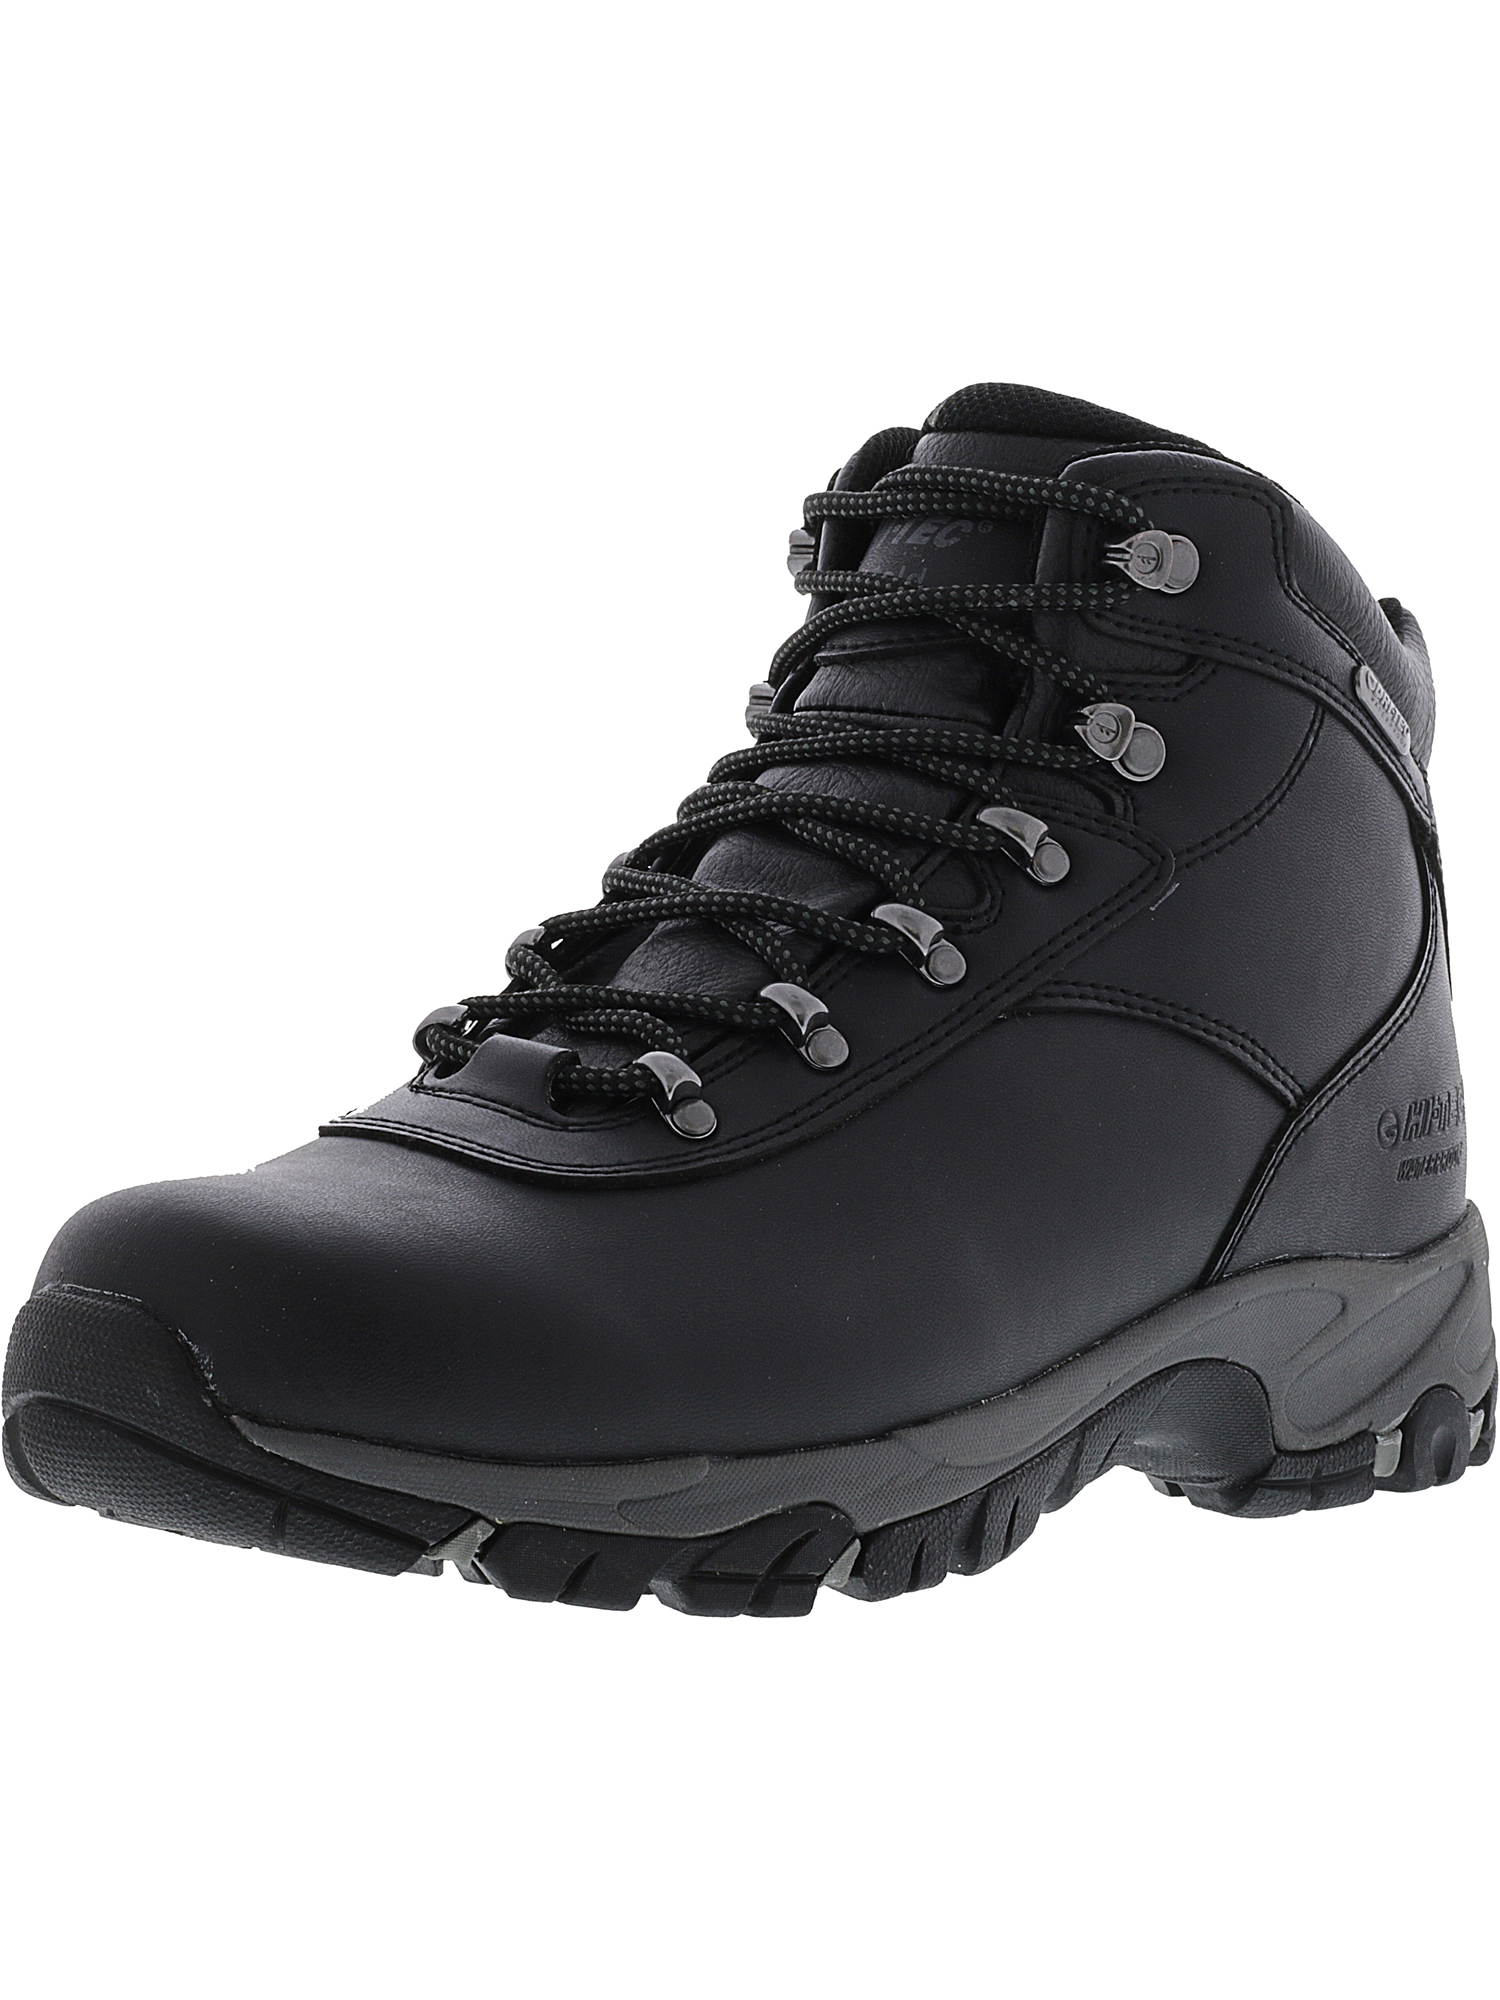 Hi-Tec Men's Altitude Vi I Waterproof Black   Charcoal Ankle-High Leather Boot 7.5W by Hi-Tec